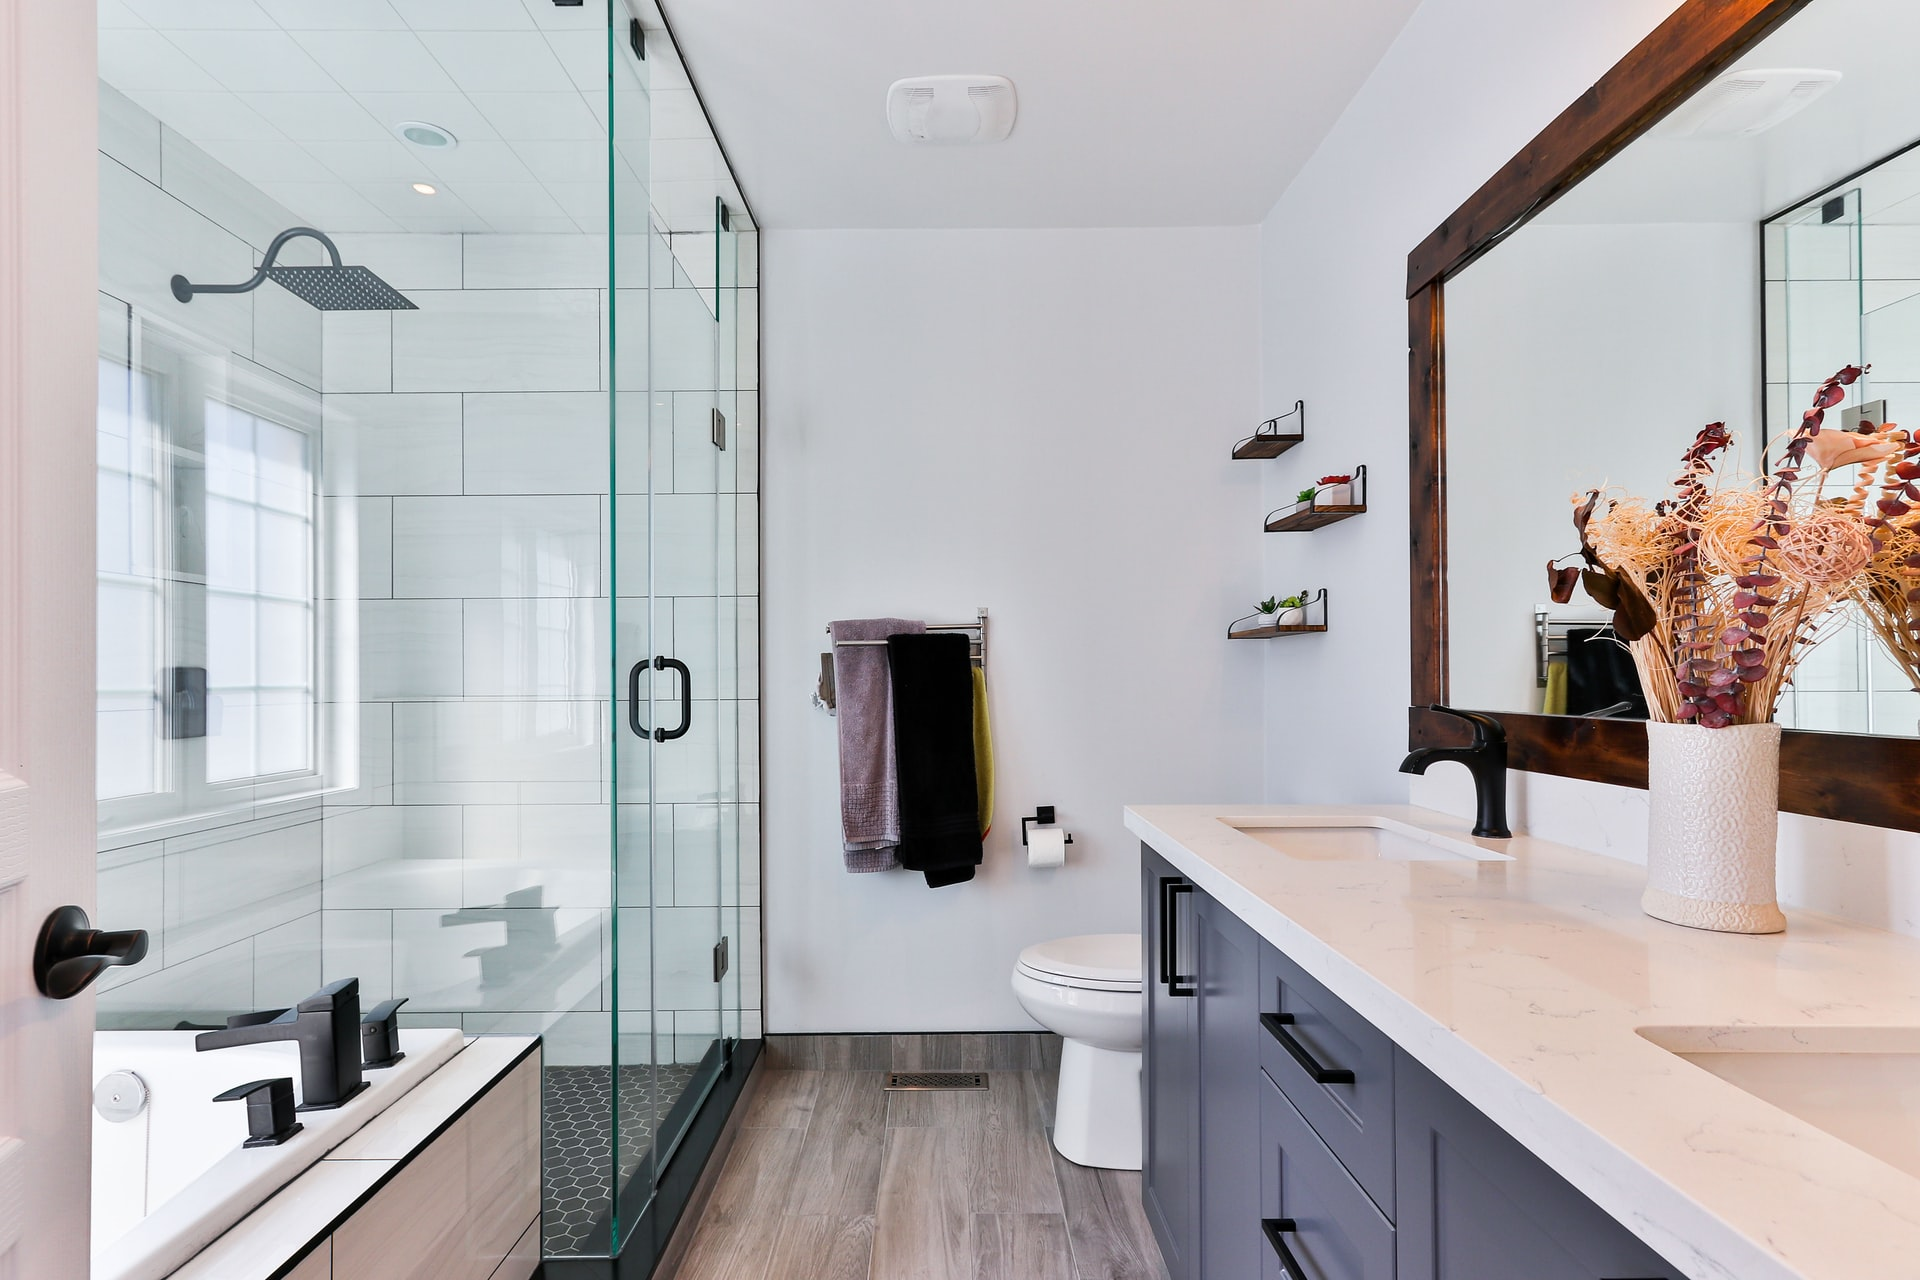 8 Common Bathroom Issues And How To Effectively Deal With Them